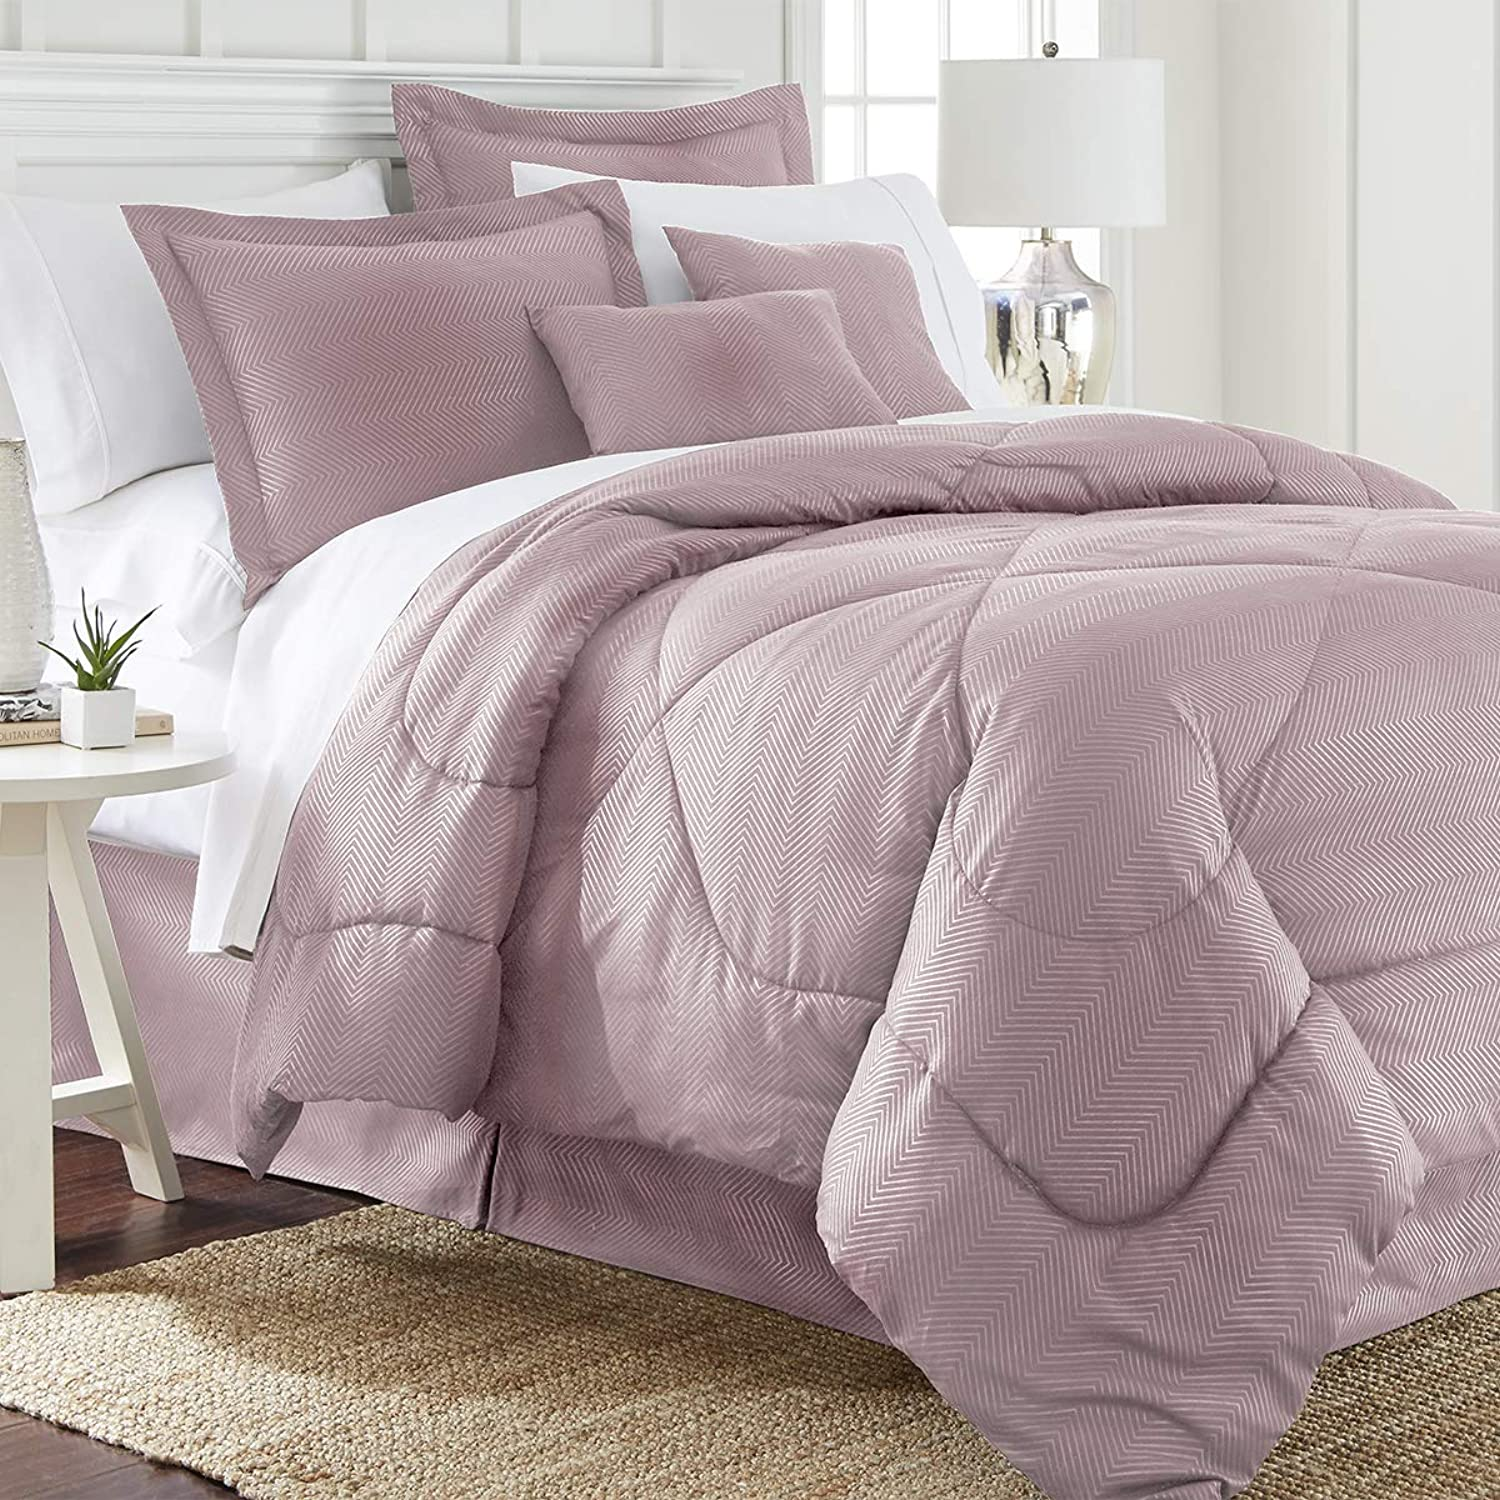 SPIRIT LINEN HOME Six Piece Embossed Chevron Comforter Set, Queen, pink